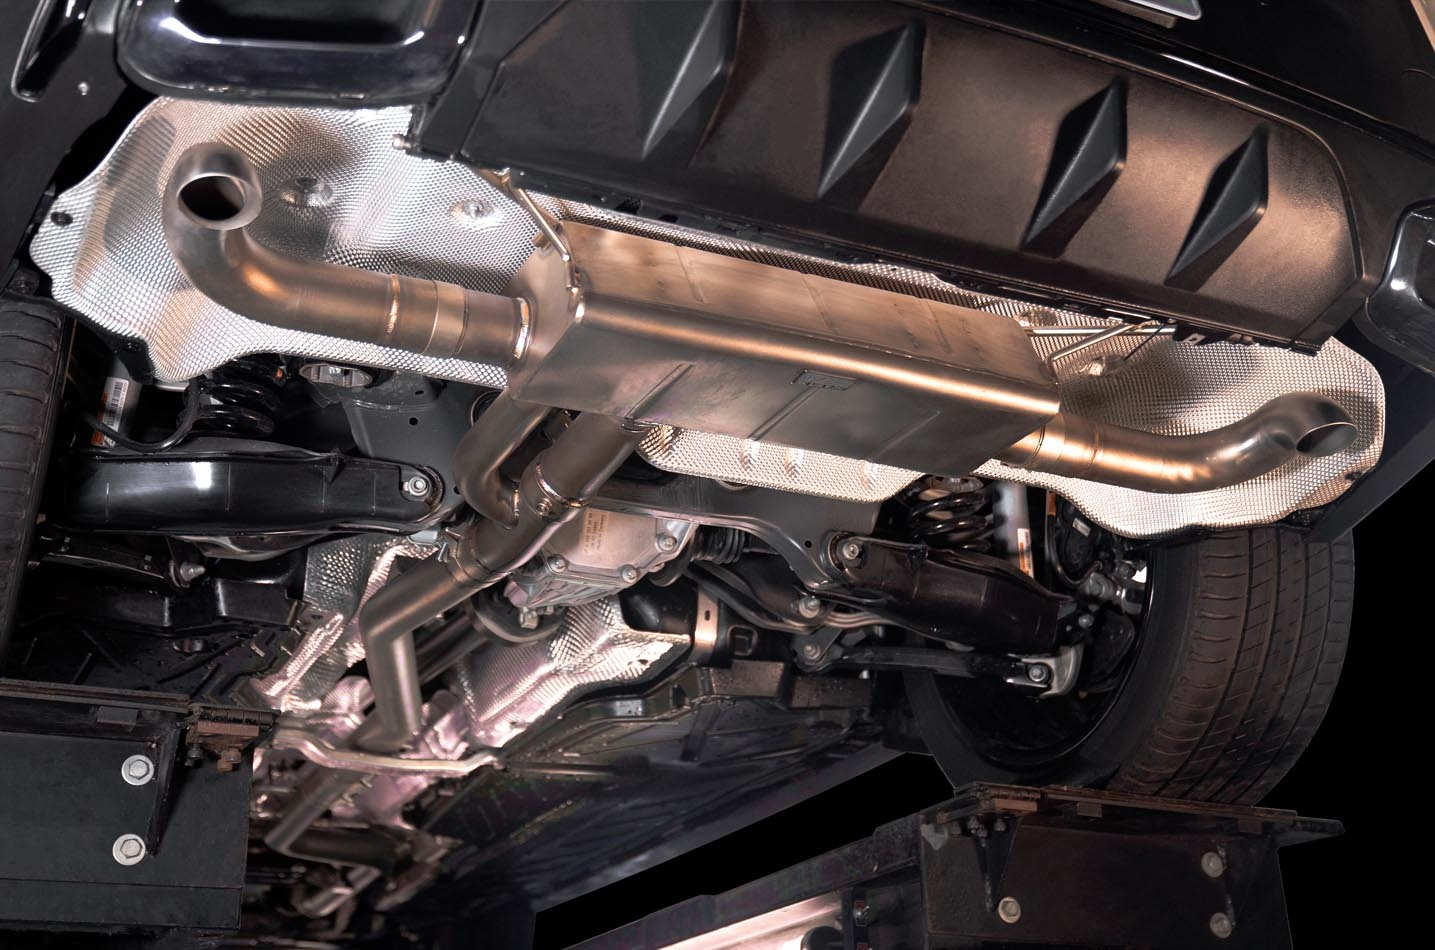 IPE exhaust system for Mercedes-Benz GLC250 / GLC300 (X253/C253) 2020 facelift